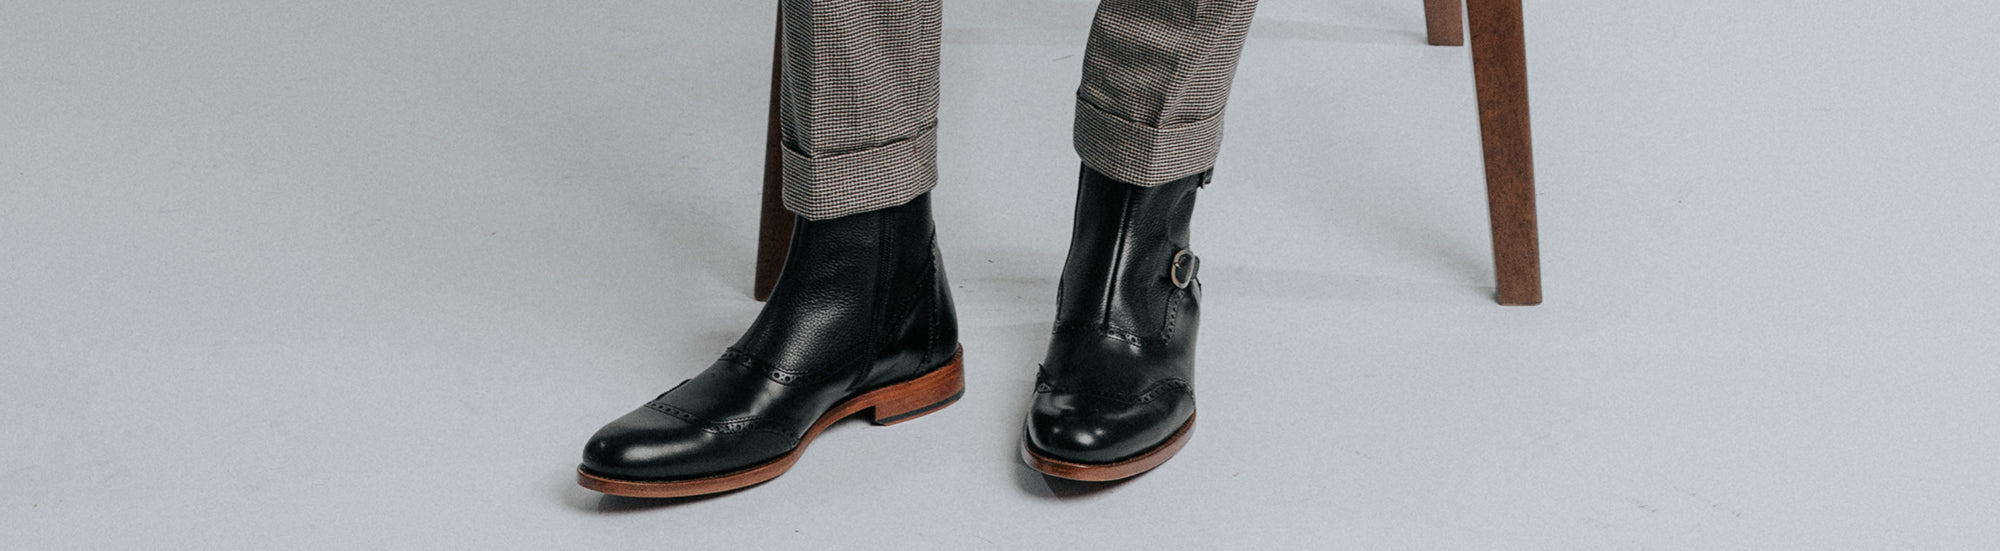 The Dustin Boot in Black on model wearing checkered pants